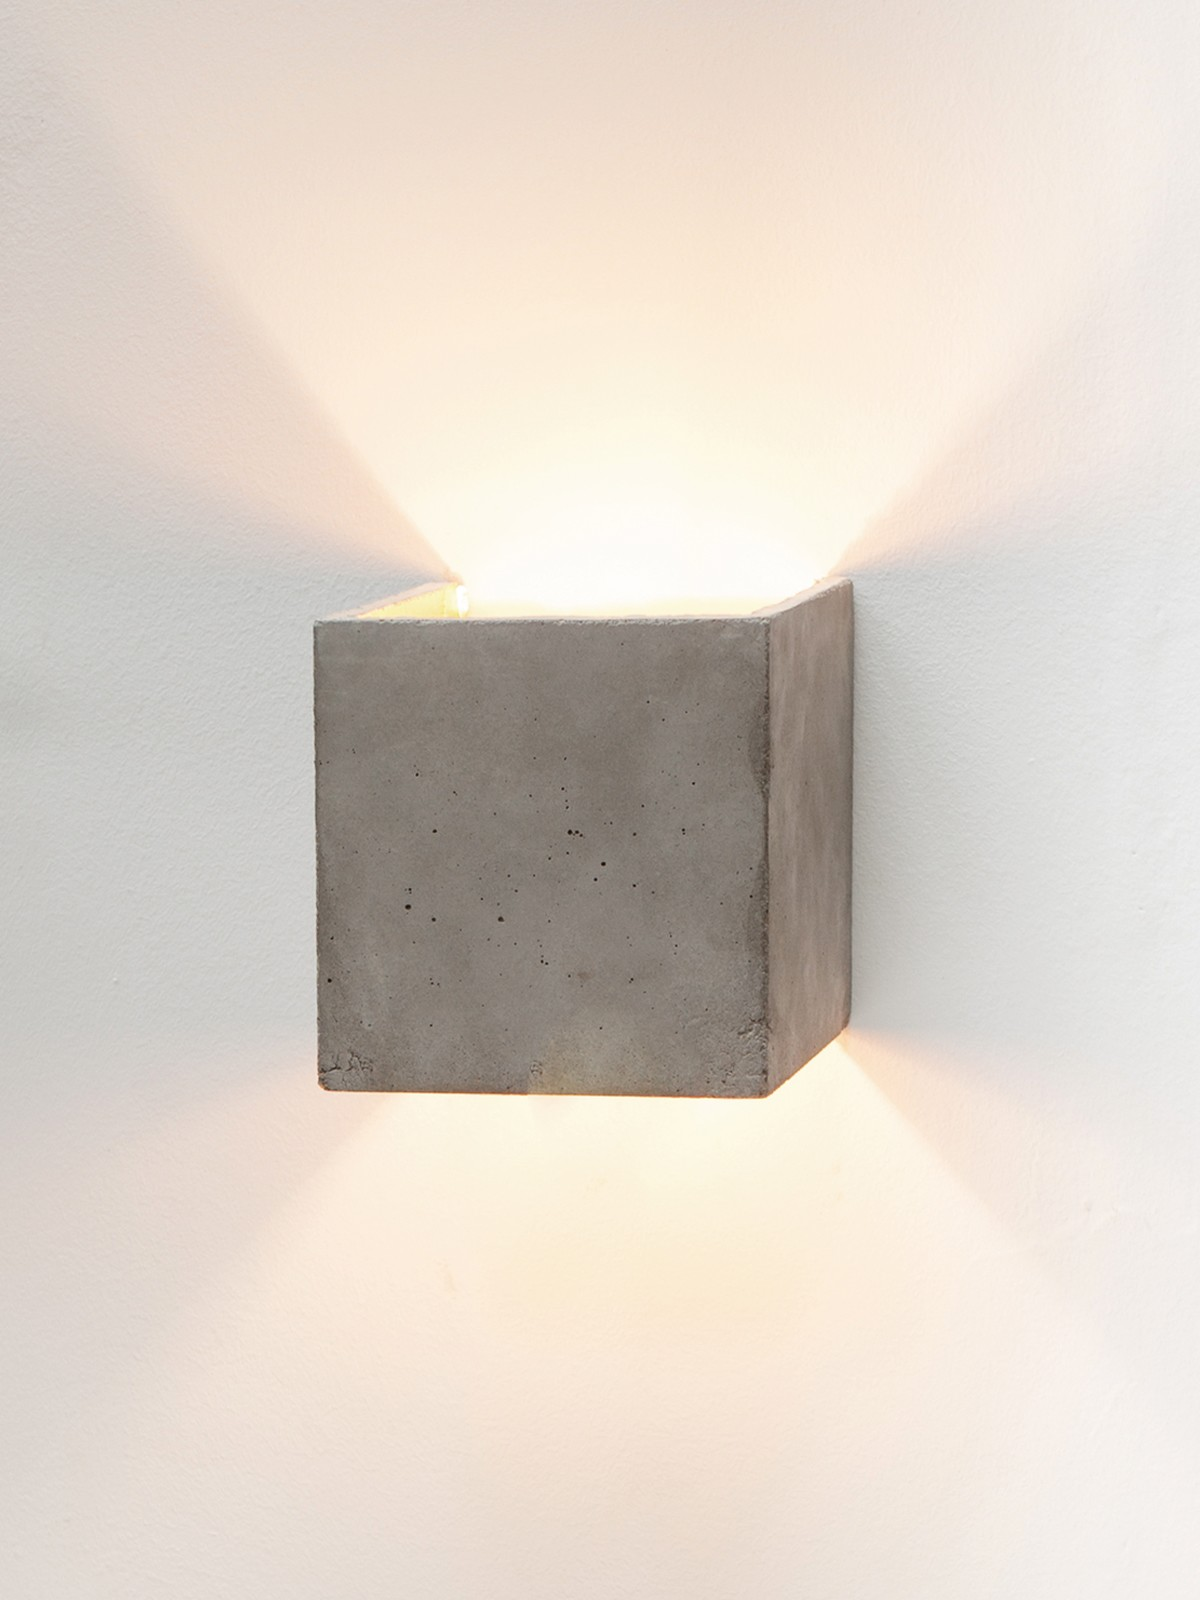 [B3] Wall Light Cubic Light Grey Concrete, Gold Plating